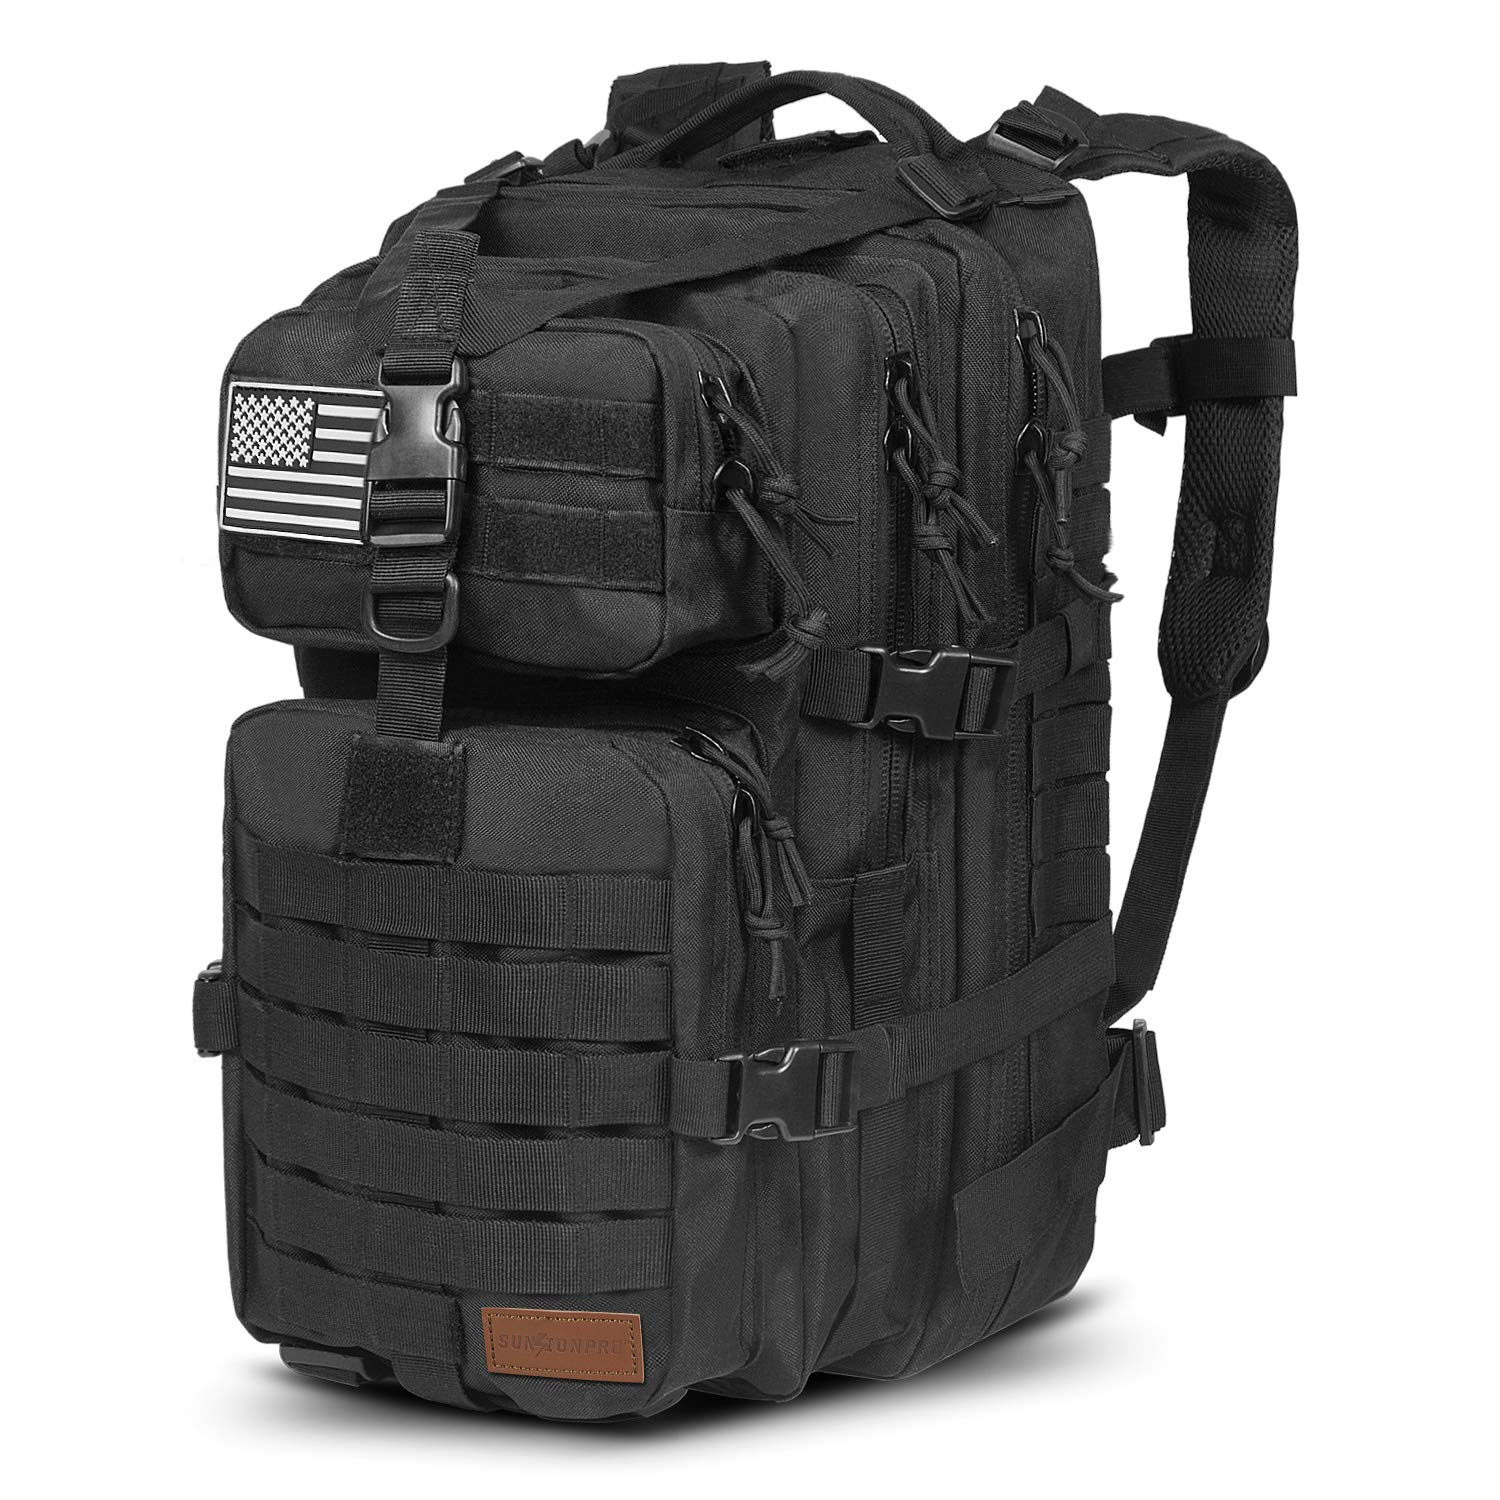 SunsionPro MTB-231 Military Tactical Backpack Large Army 3 Day Assault Pack Molle Bag Travel Rucksacks for Outdoor Hiking Camping Trekking Hunting, 43L (Black)